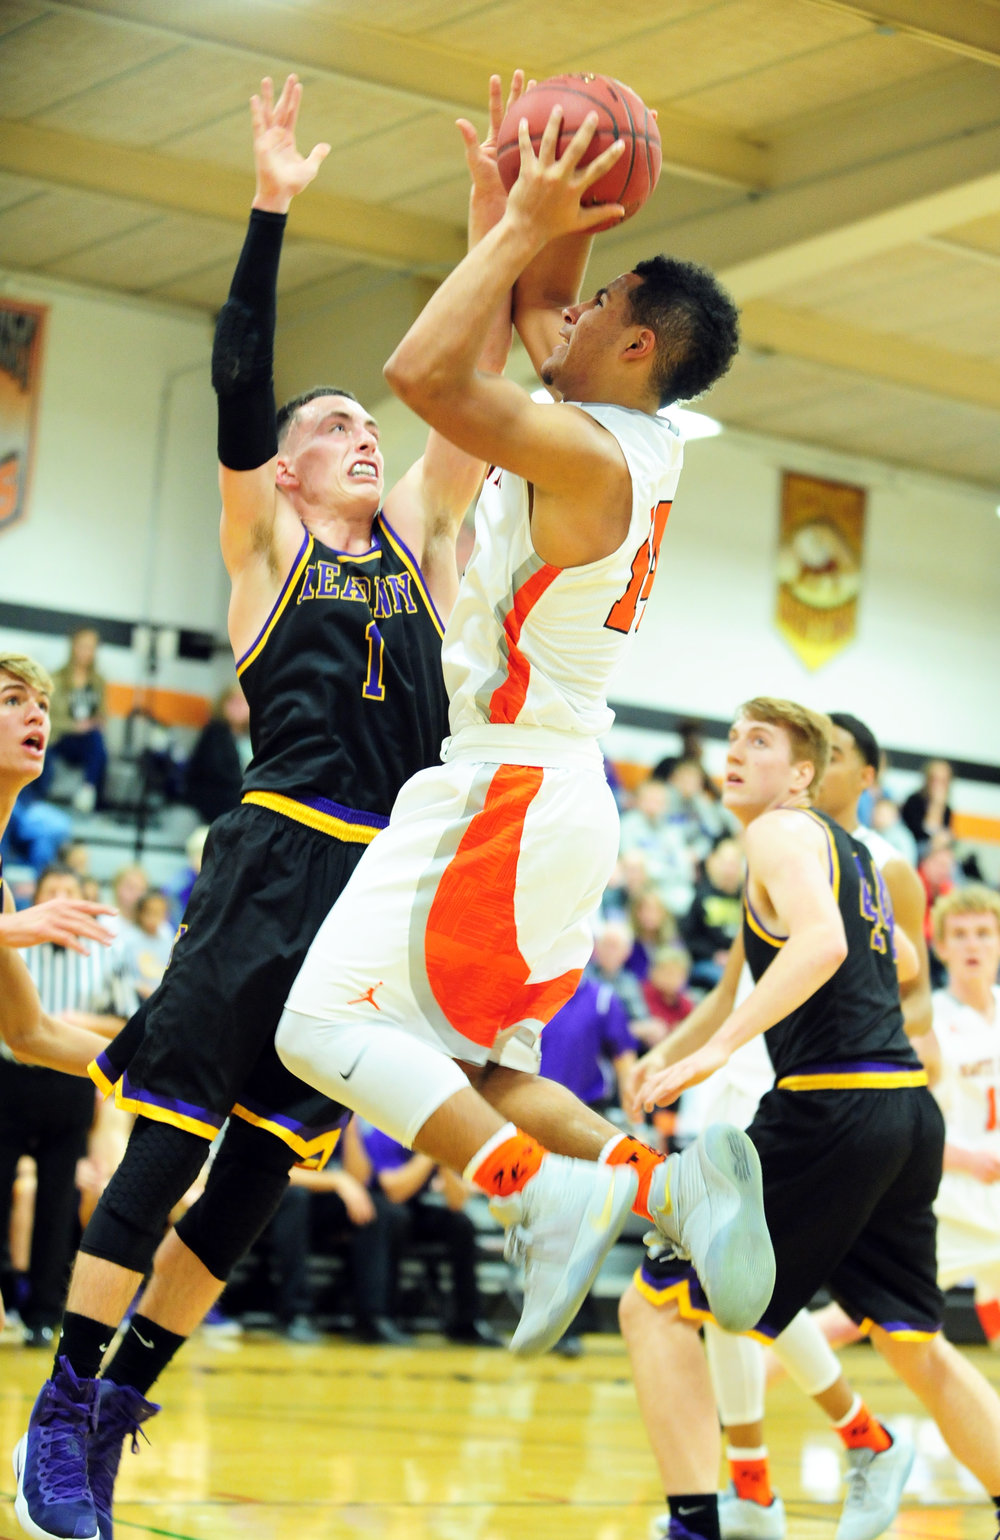 NICK INGRAM/Citizen photo Platte County junior Kobe Cummings, right, takes a shot over a Kearney defender during the Pirates' loss to Kearney on Friday, Jan. 6 at Platte County High School.